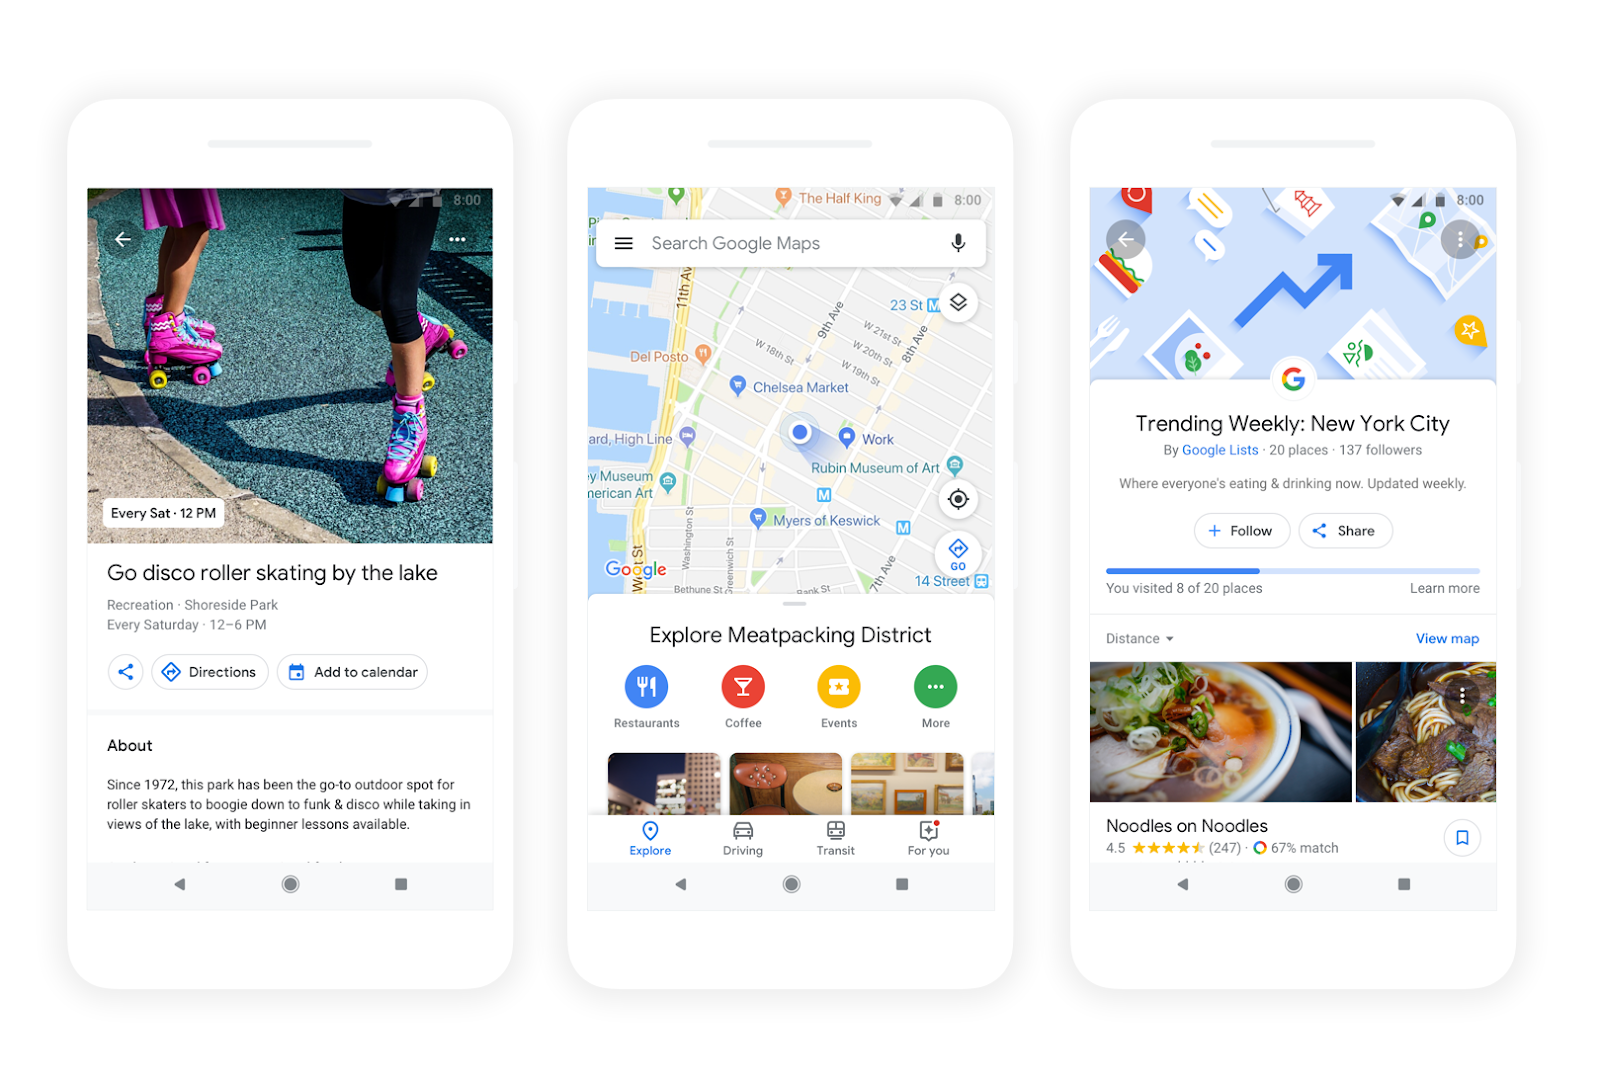 Google Maps Is Personalizing Dining and Activity Recommendations, and Will Even 'Match' You to Restaurants